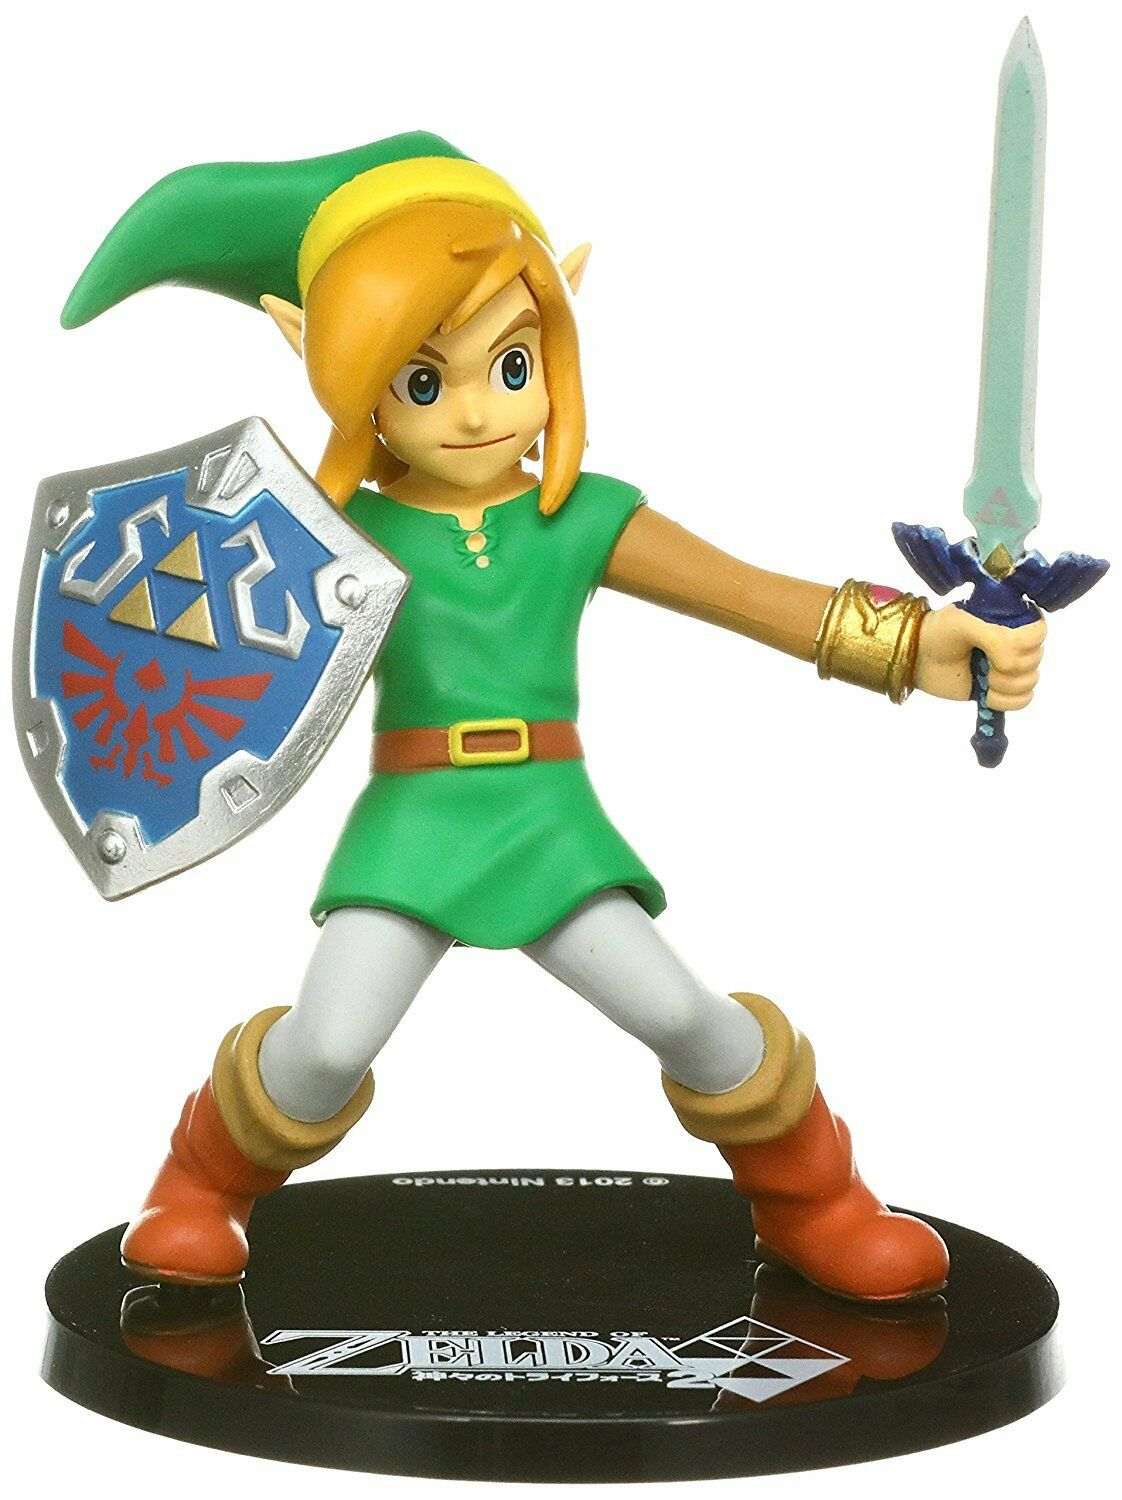 Medicom Toy Japan Ultra Detail Figure 314 Link Zelda Tri-force 2 from Japan